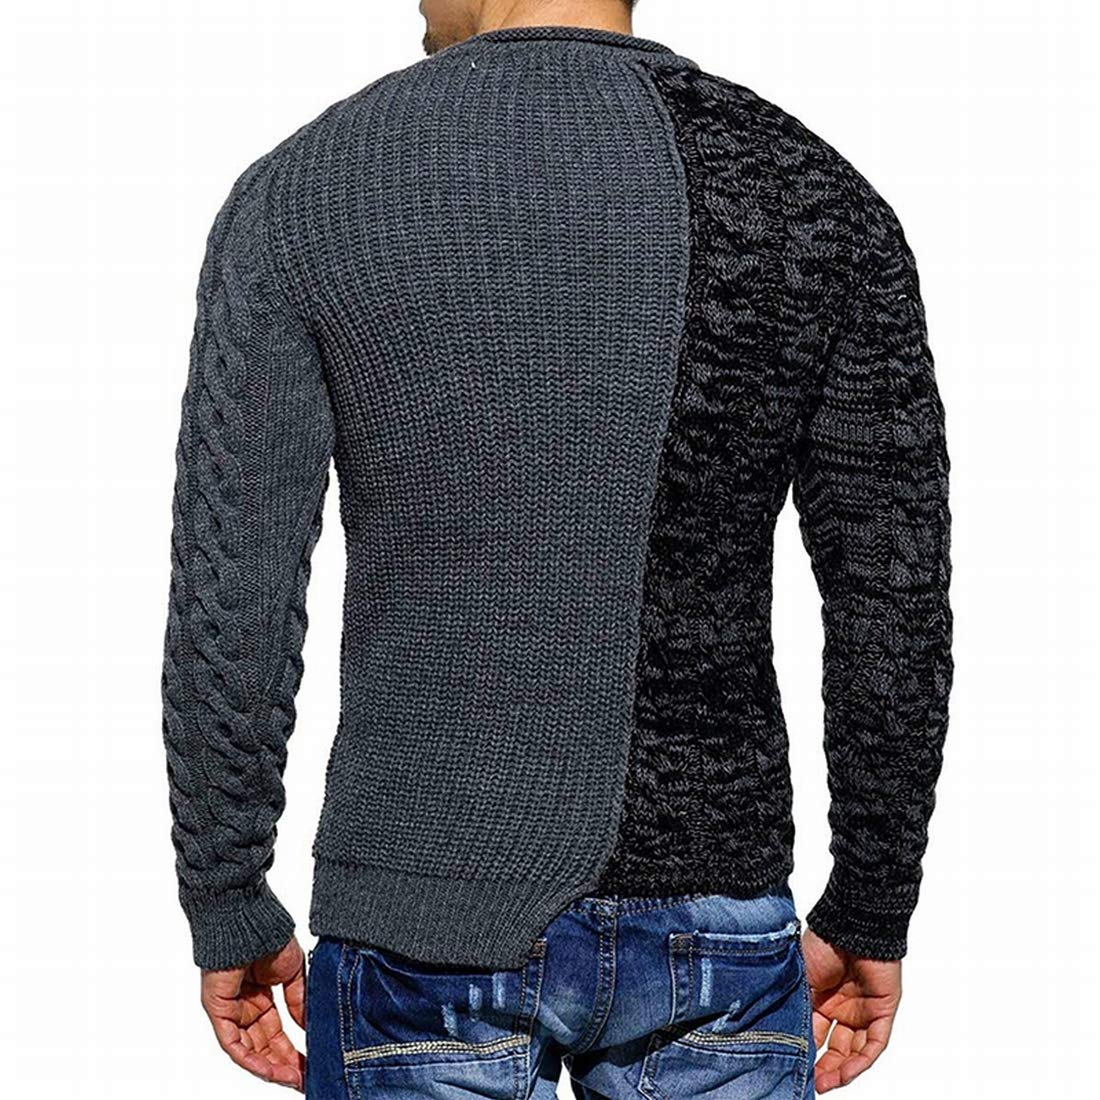 KLJR Men Casual Patchwork Long Sleeve Crewneck Pullover Knitted Sweater